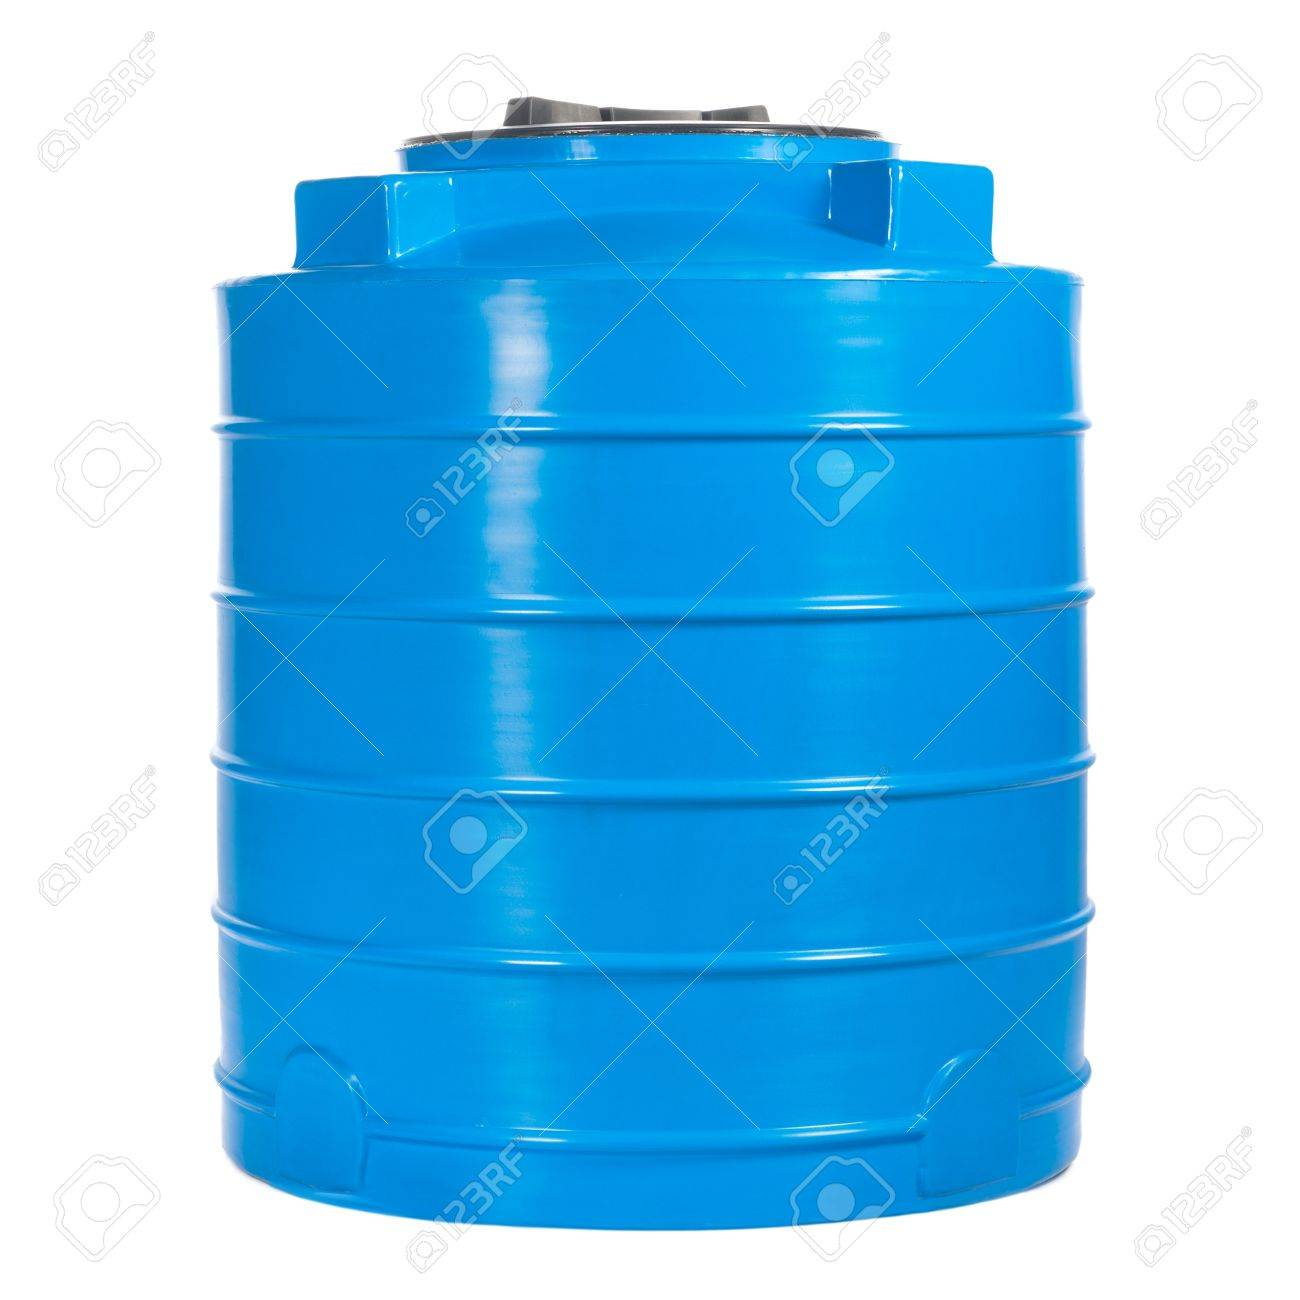 Big polyethylene container of 400 liters. - 14793426